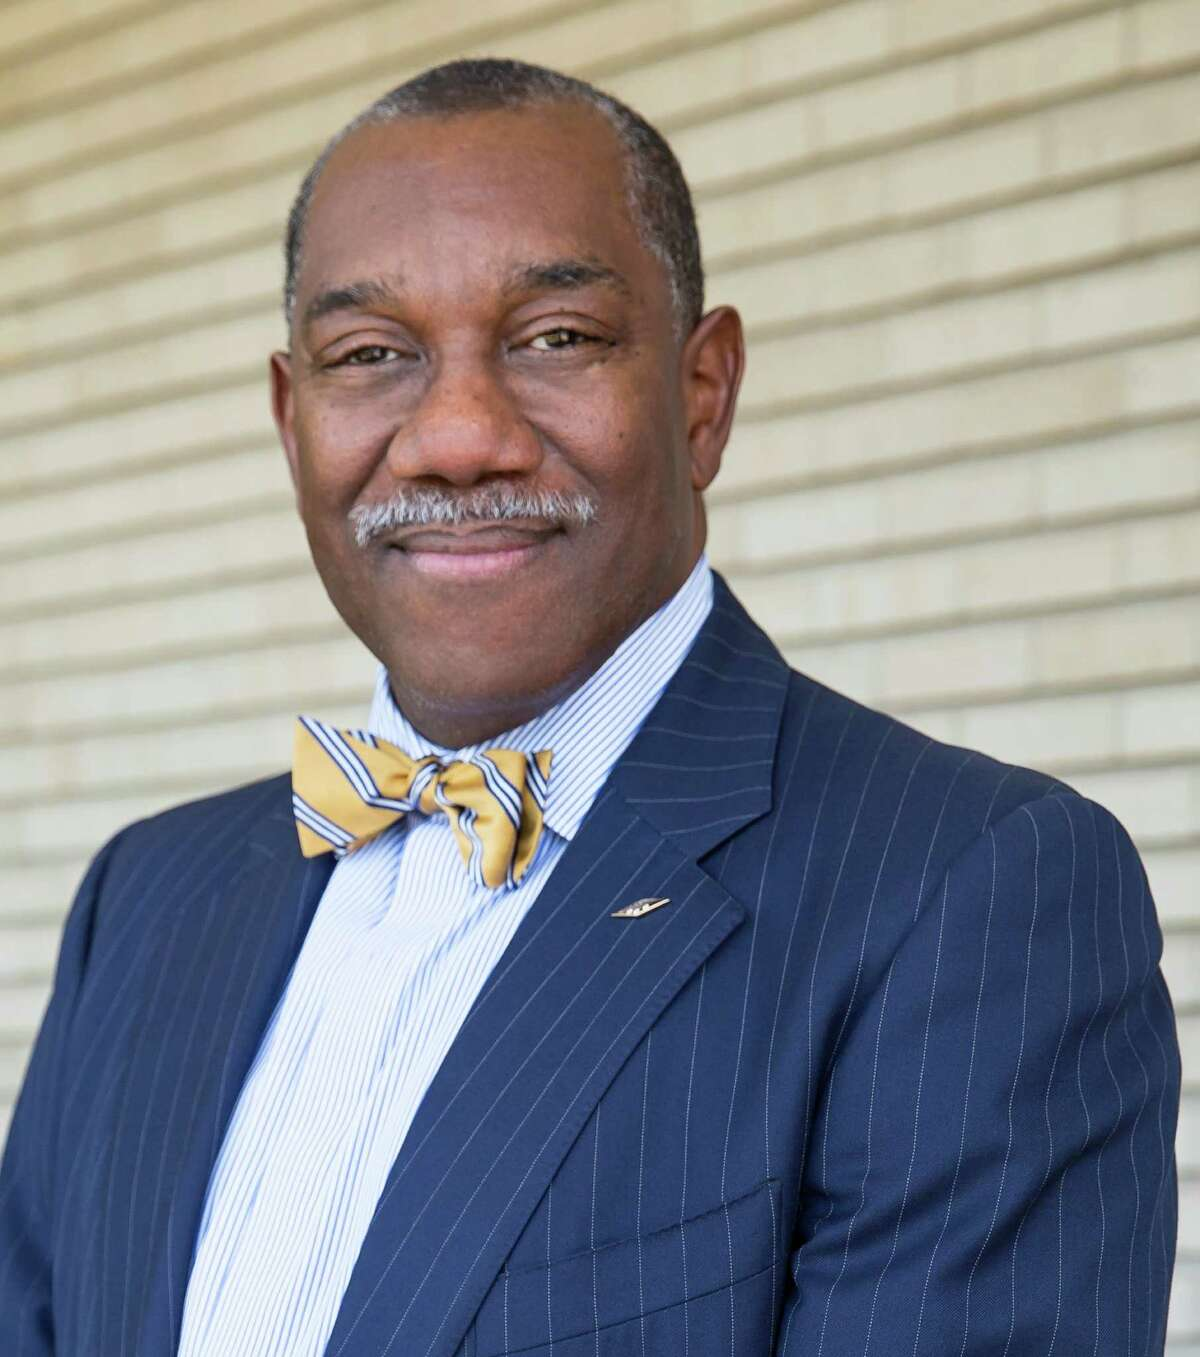 Earl Shipp, vice president of operations, U.S. Gulf Coast, The Dow Chemical Co., has been appointed to the board of directors at CHI St. LukeÂ?'s Health.